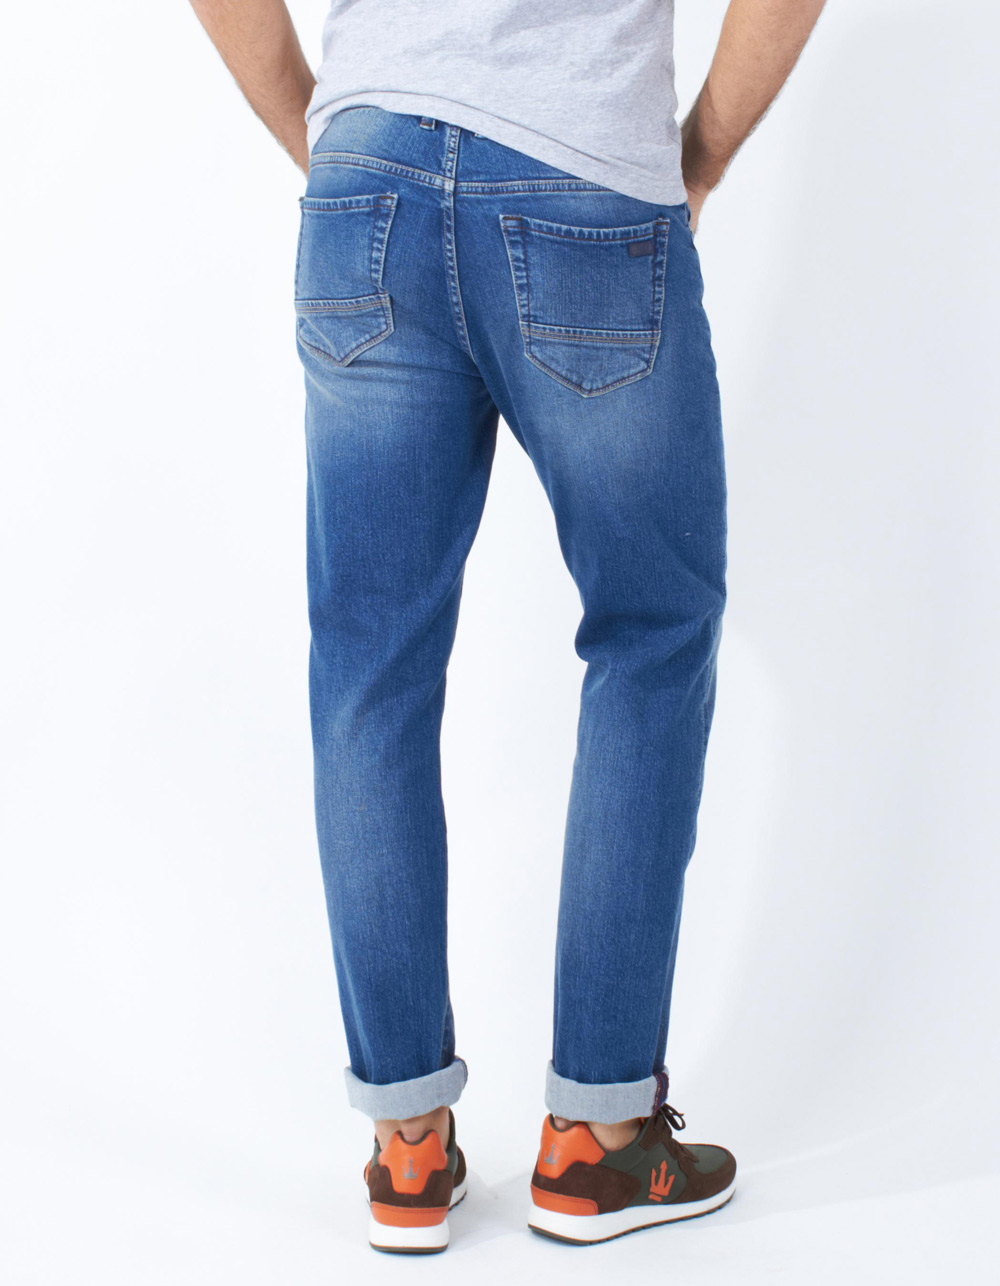 Light blue jeans - Backside